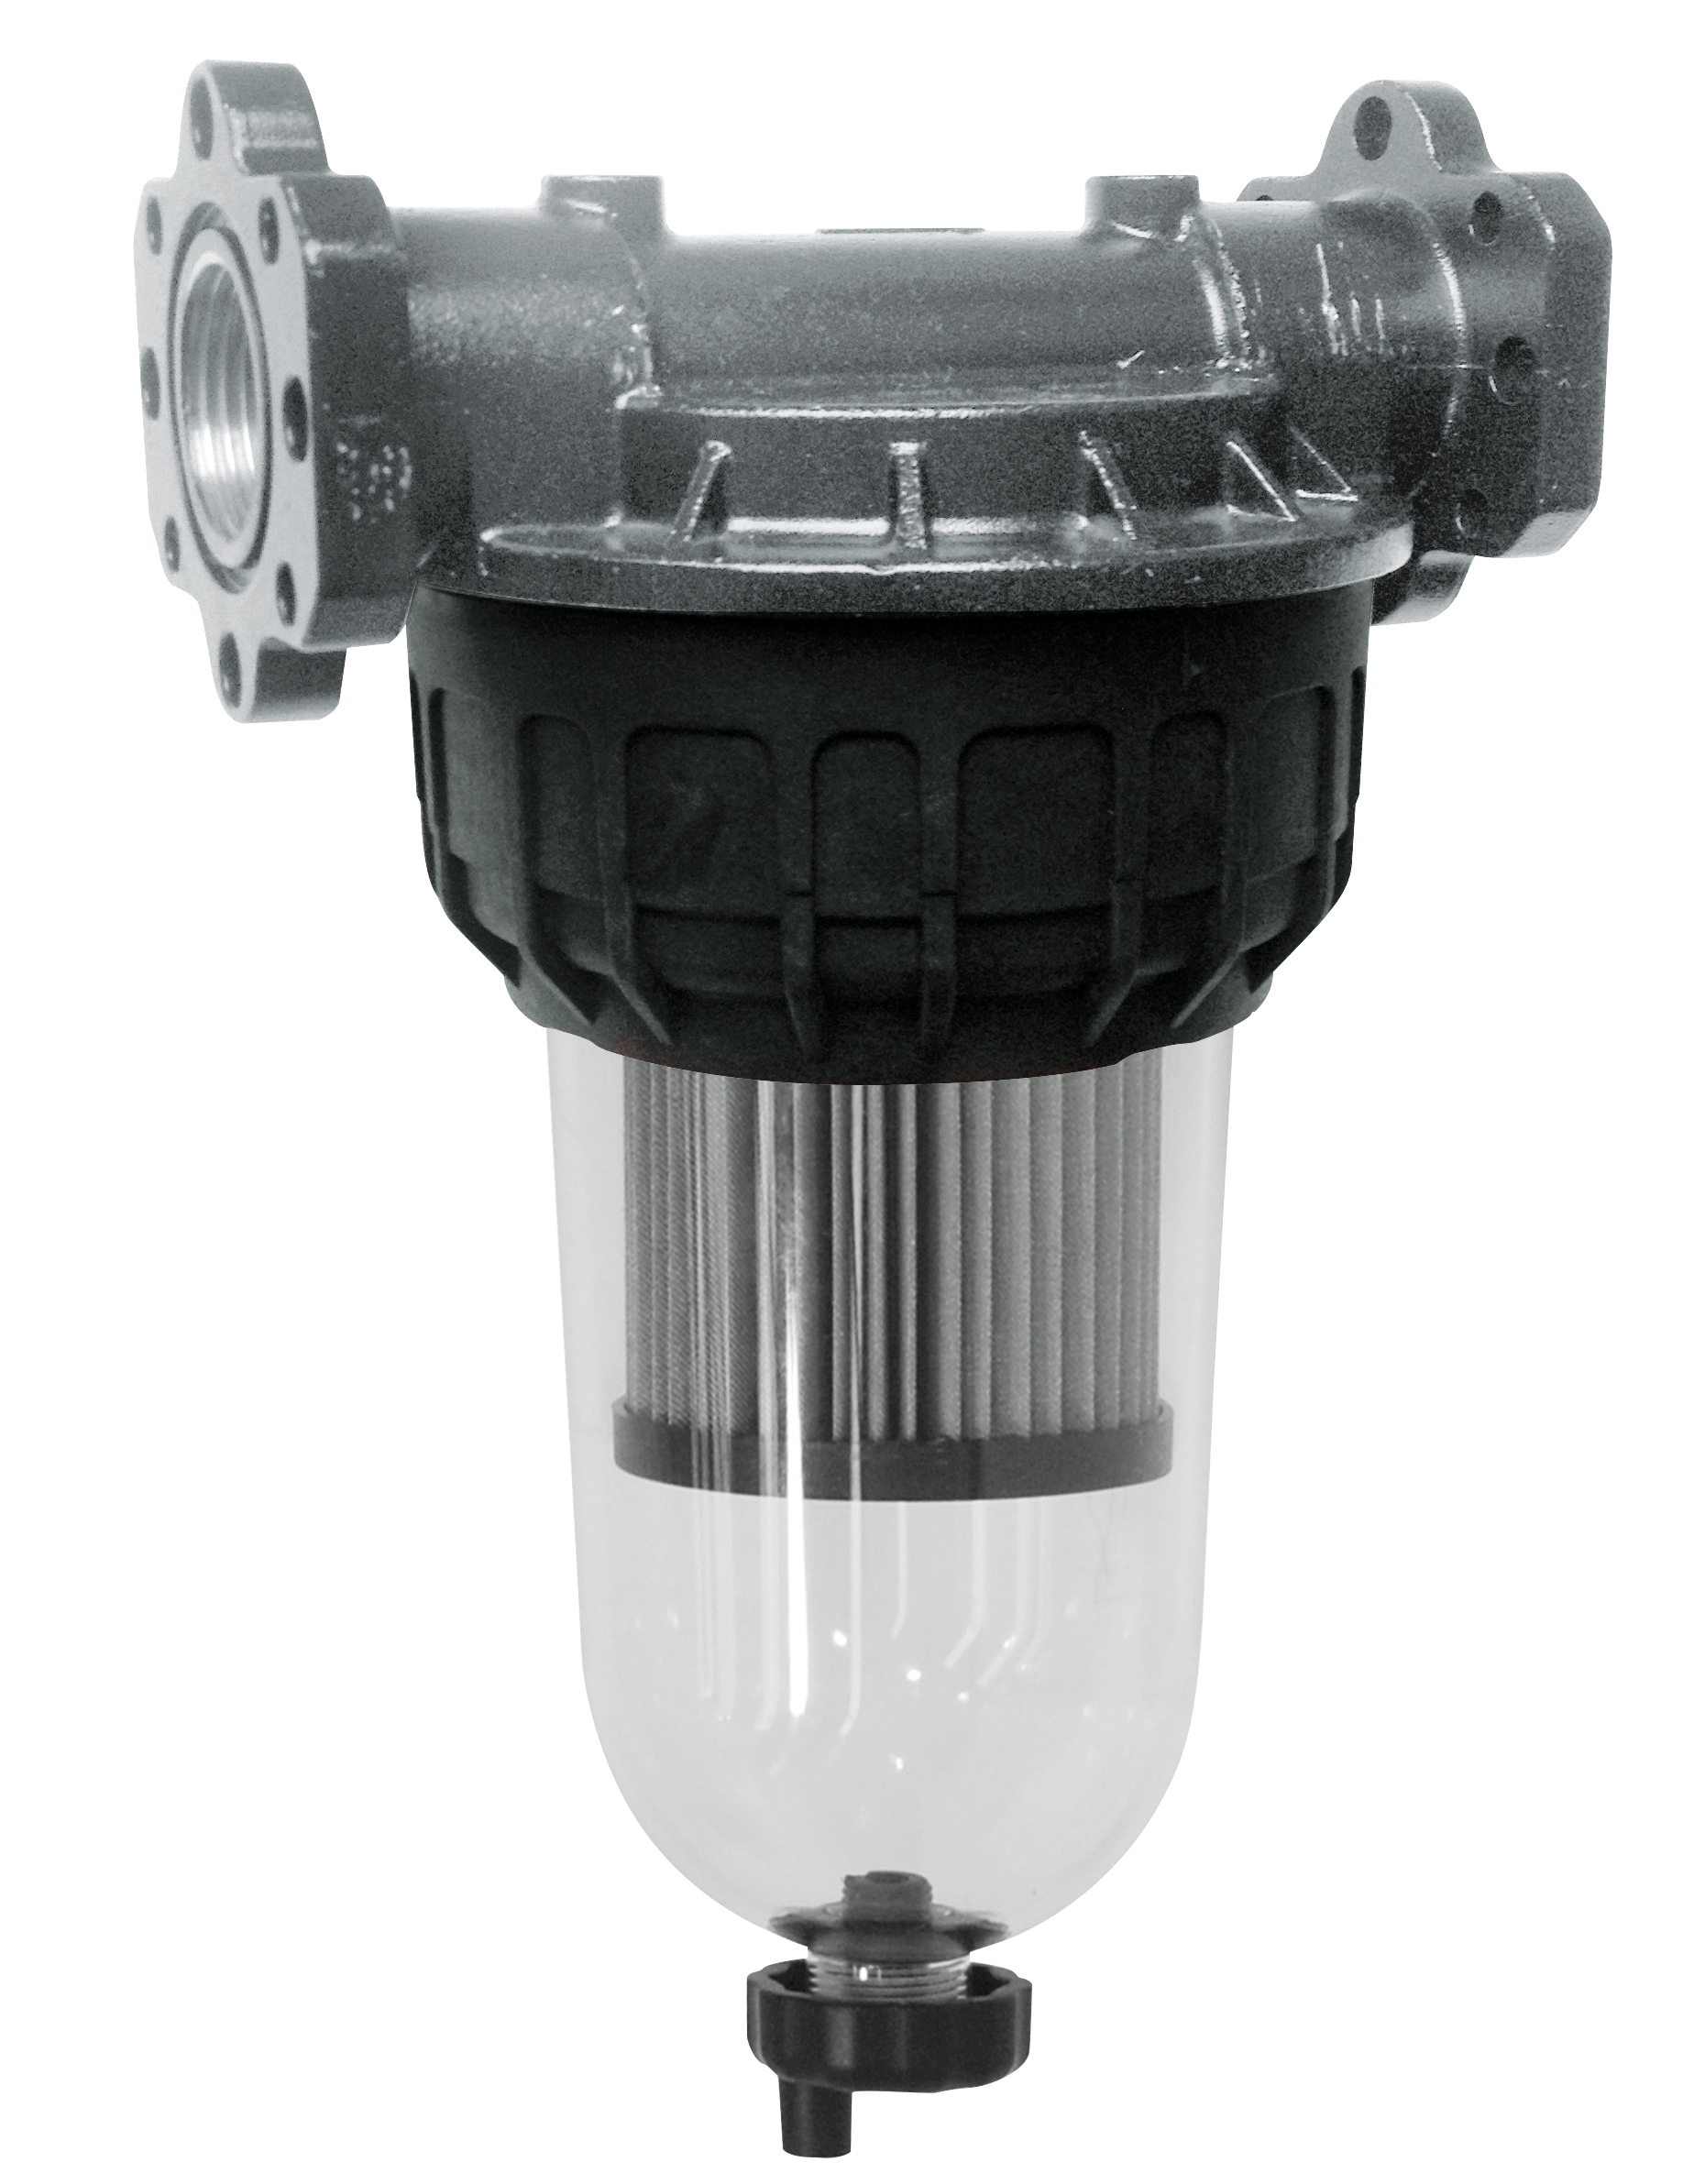 Accessories For Diesel Zuwa Zumpe 7 3 Fuel Filter Assembly And Oil Transparent